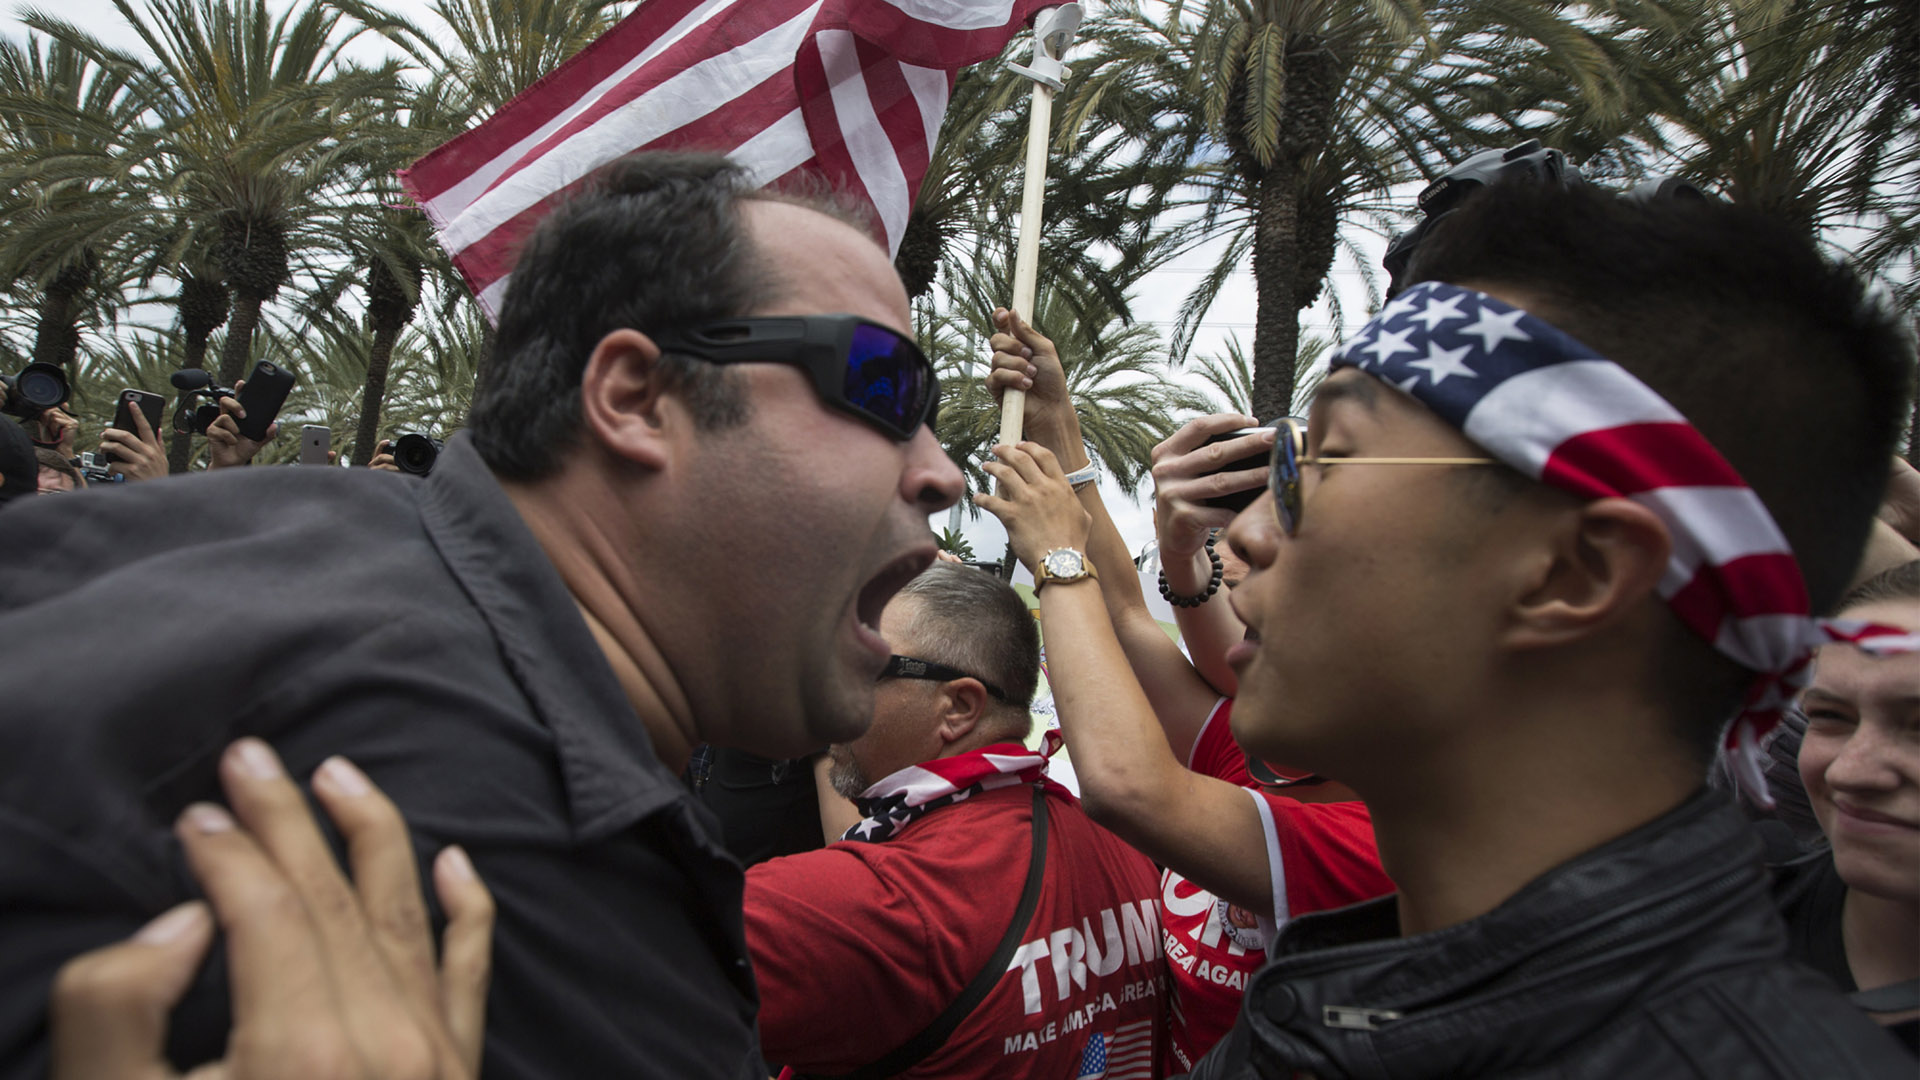 ANAHEIM, CA - MAY 25: An anti-Trump protester (L) and a Trump support clash outside a campaign rally by presumptive GOP presidential candidate Donald Trump at the Anaheim Convention Center on May 25, 2016 in Anaheim, California. Previous visits by the candidate to Orange County have sparked in protests that resulted in some arrests. The presidential candidates are campaigning in Southern California for the June 7 California primary. (Photo by David McNew/Getty Images)